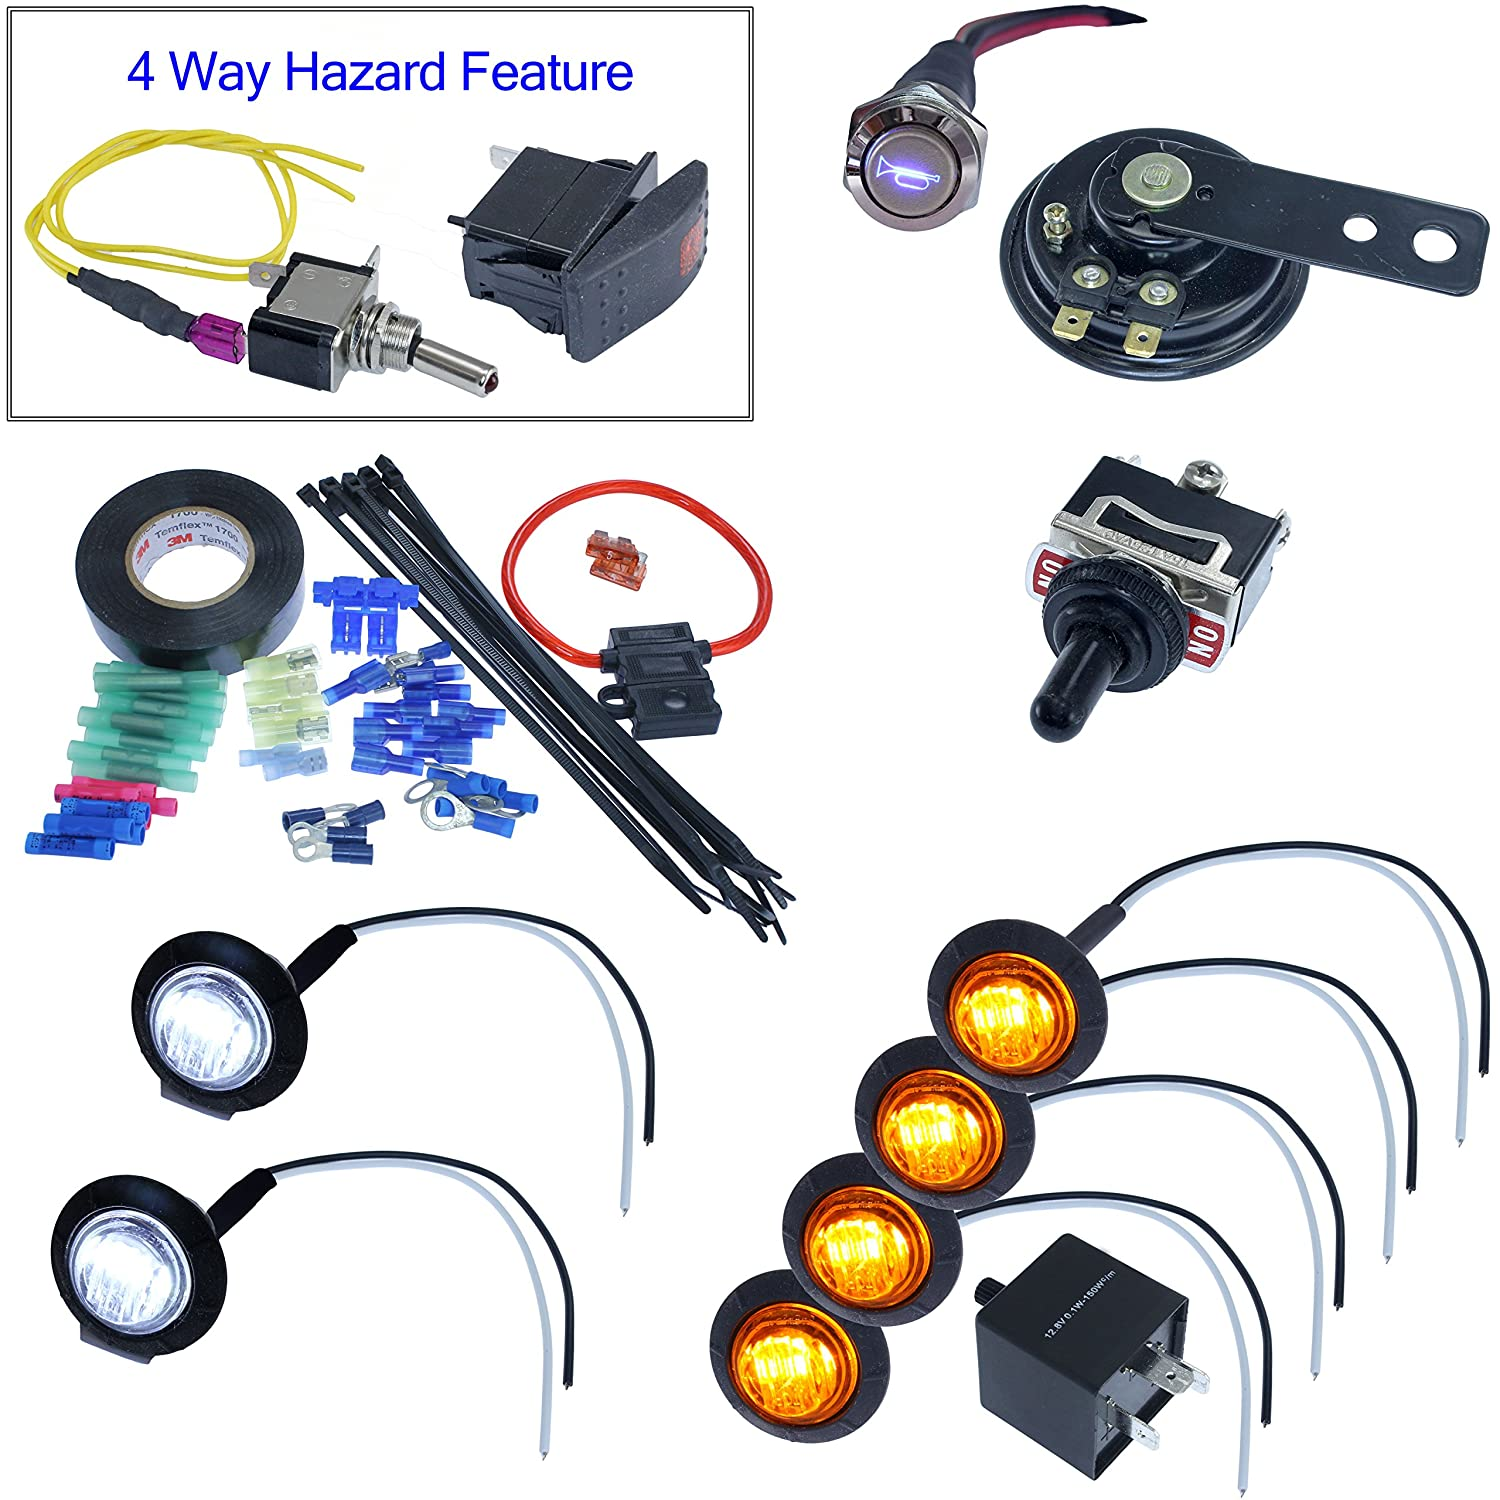 Turn Signal Kits Horn Install Kit Toggle Switch Aftermarket Motorcycle Fuse Box Automotive